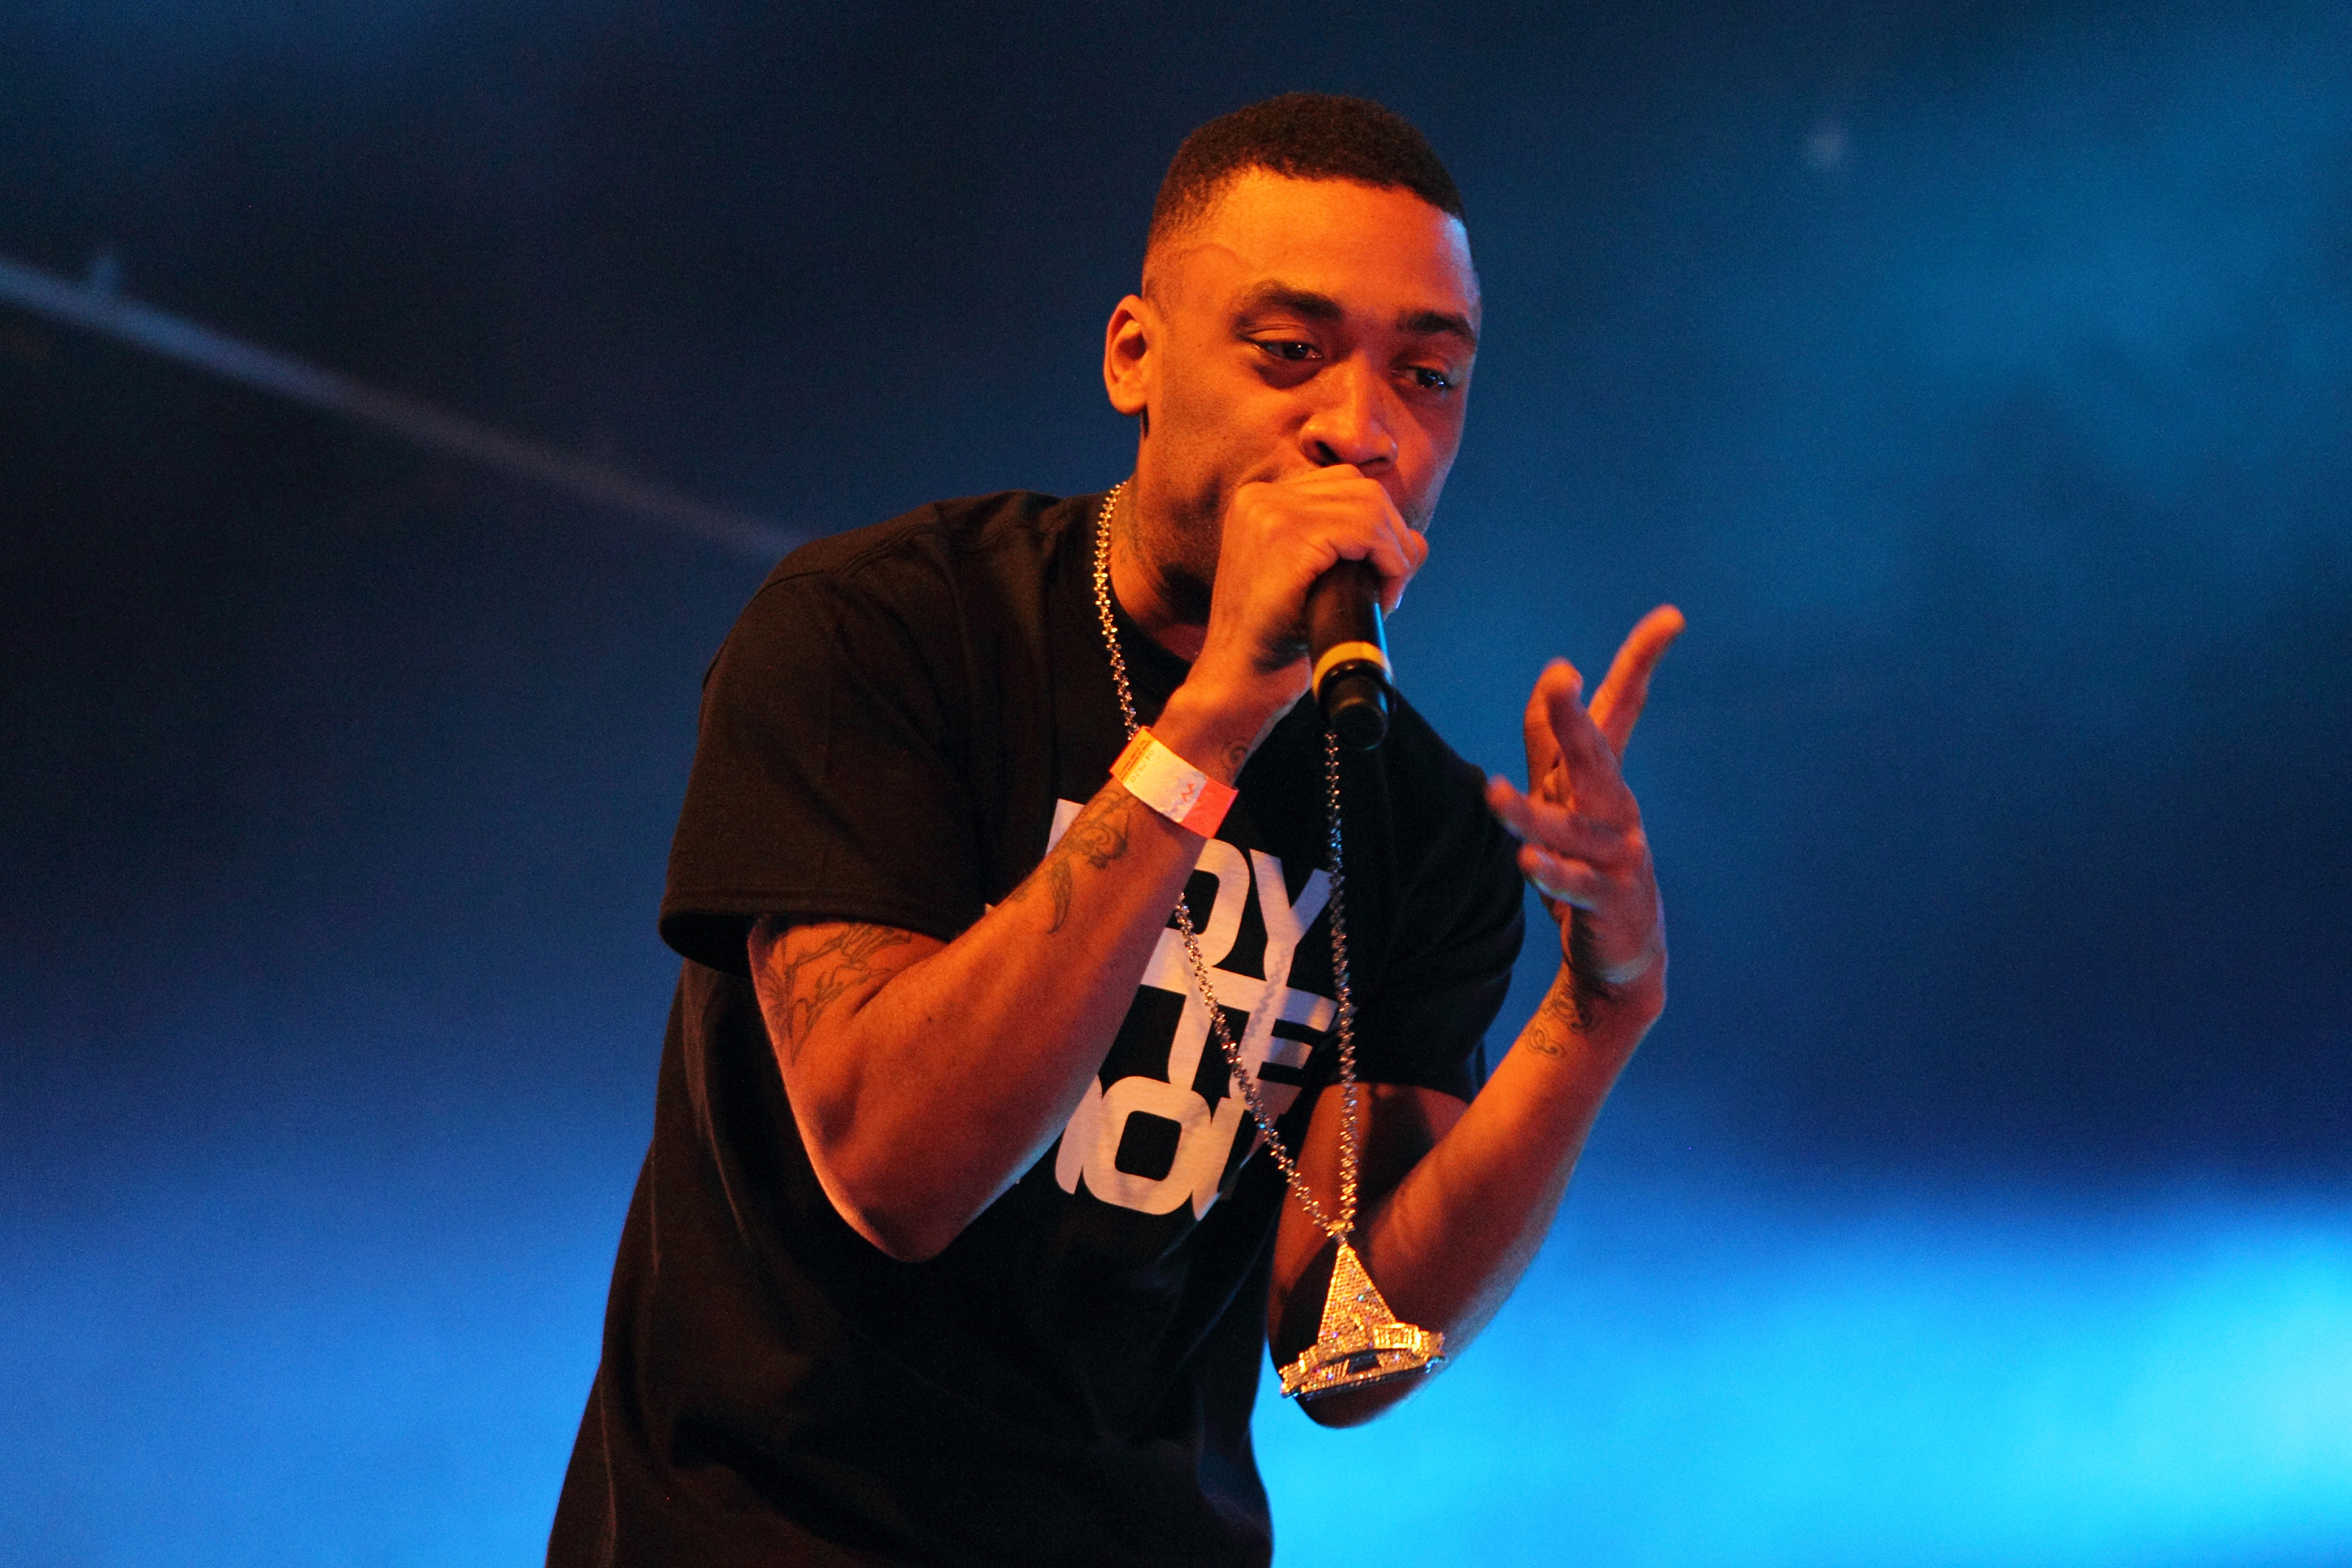 Wiley perform in London